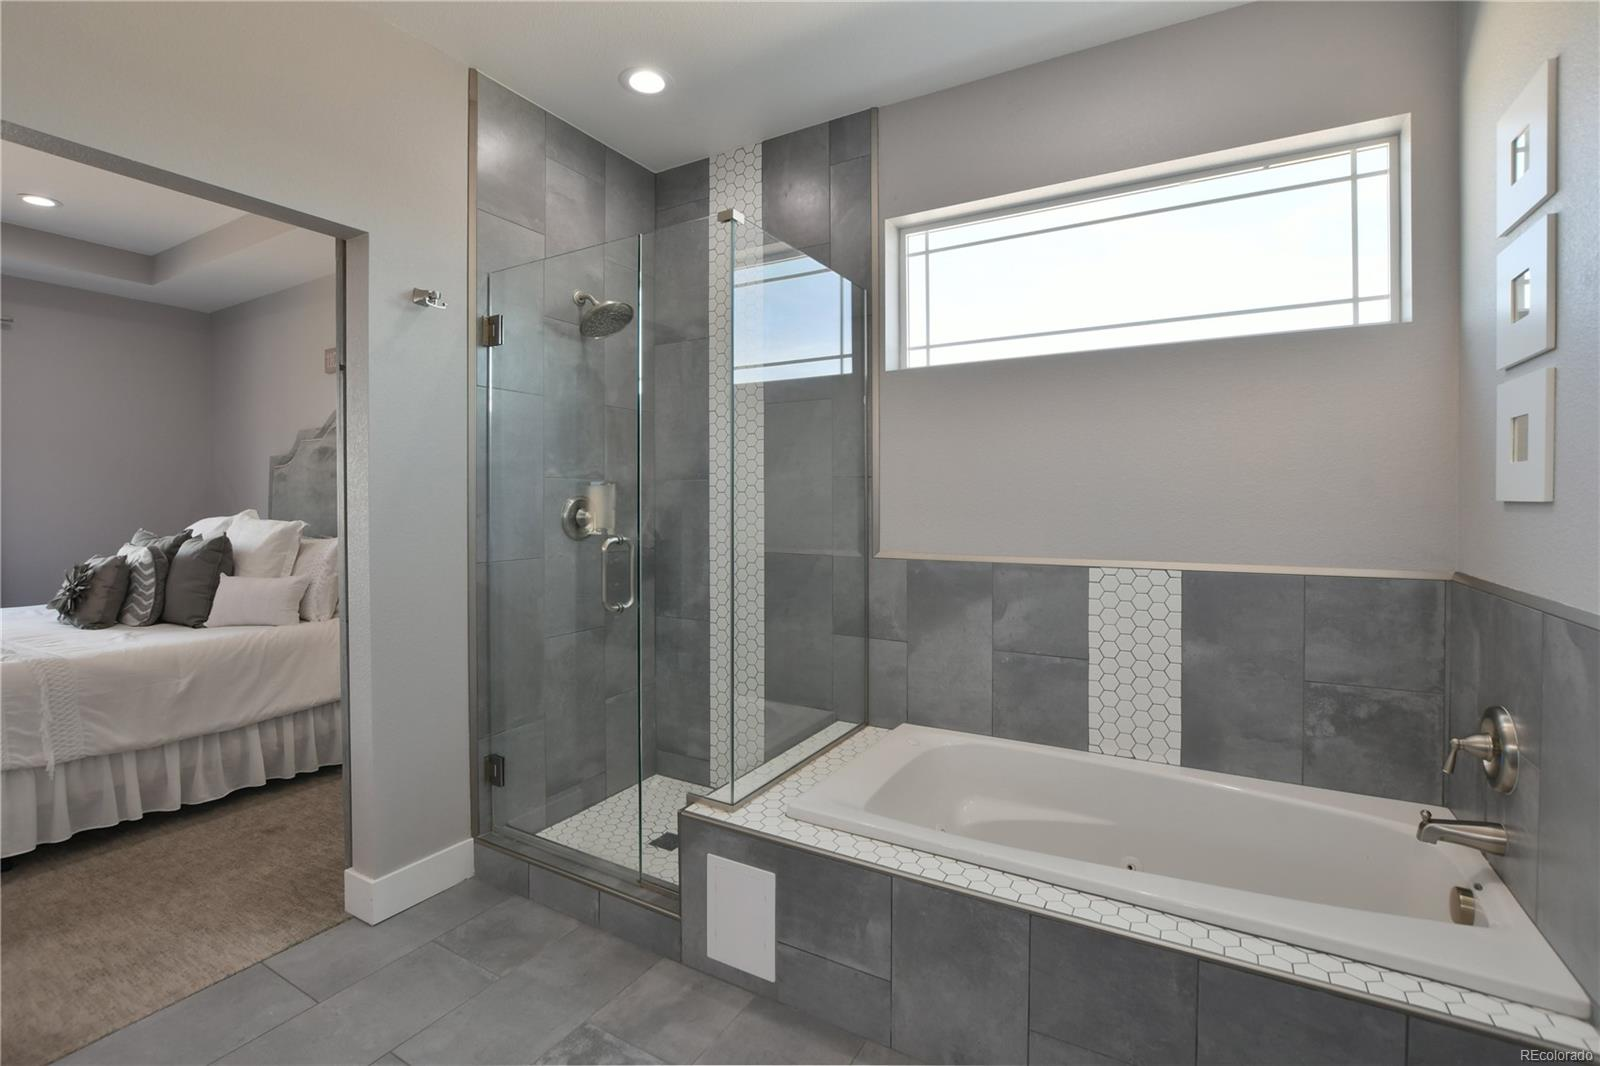 5 piece master bath with upgraded tile in the frameless shower and bathtub